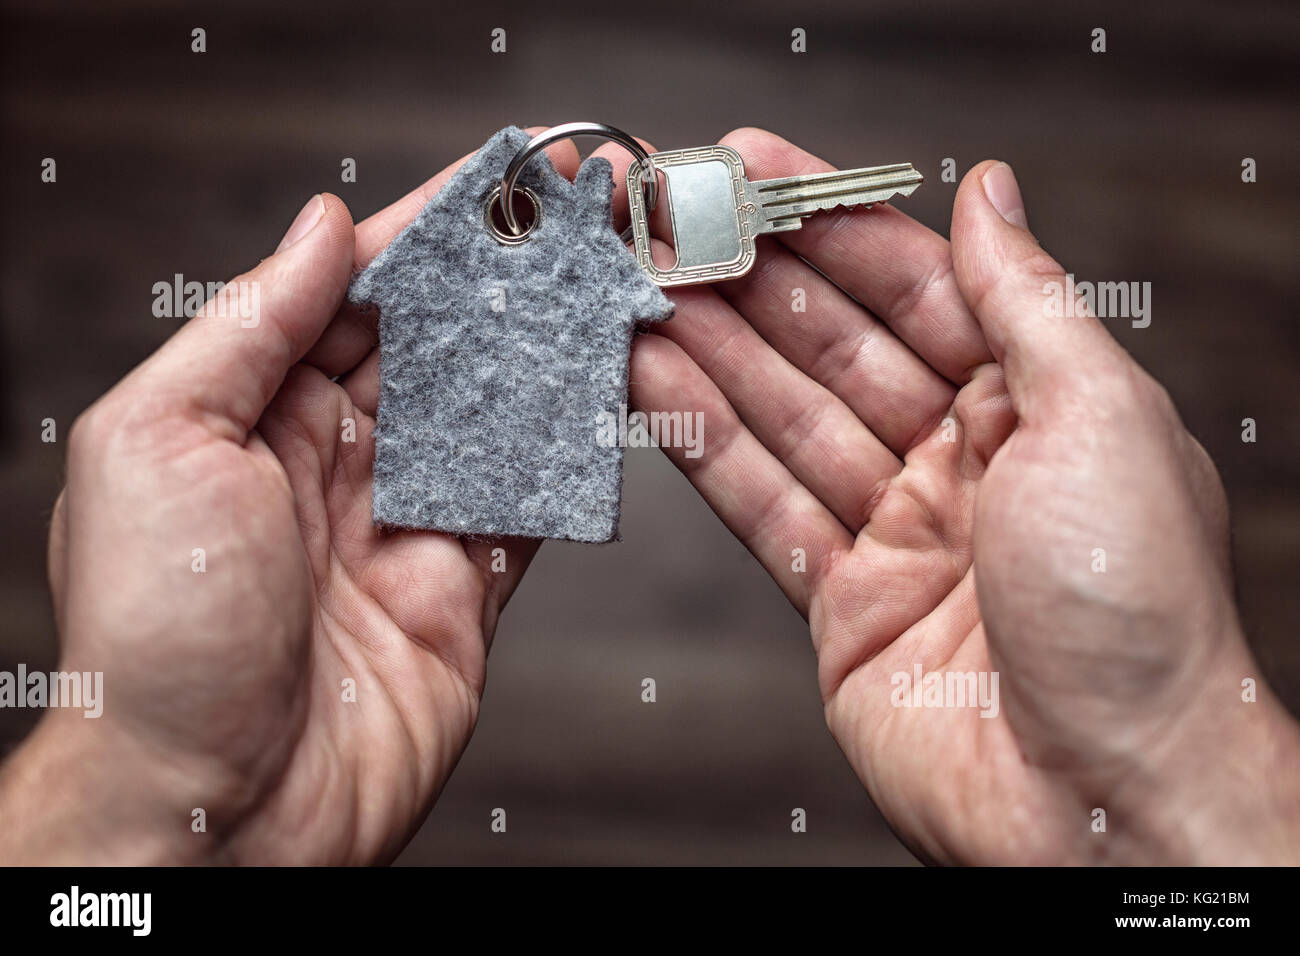 Latchkey in both hands - Stock Image